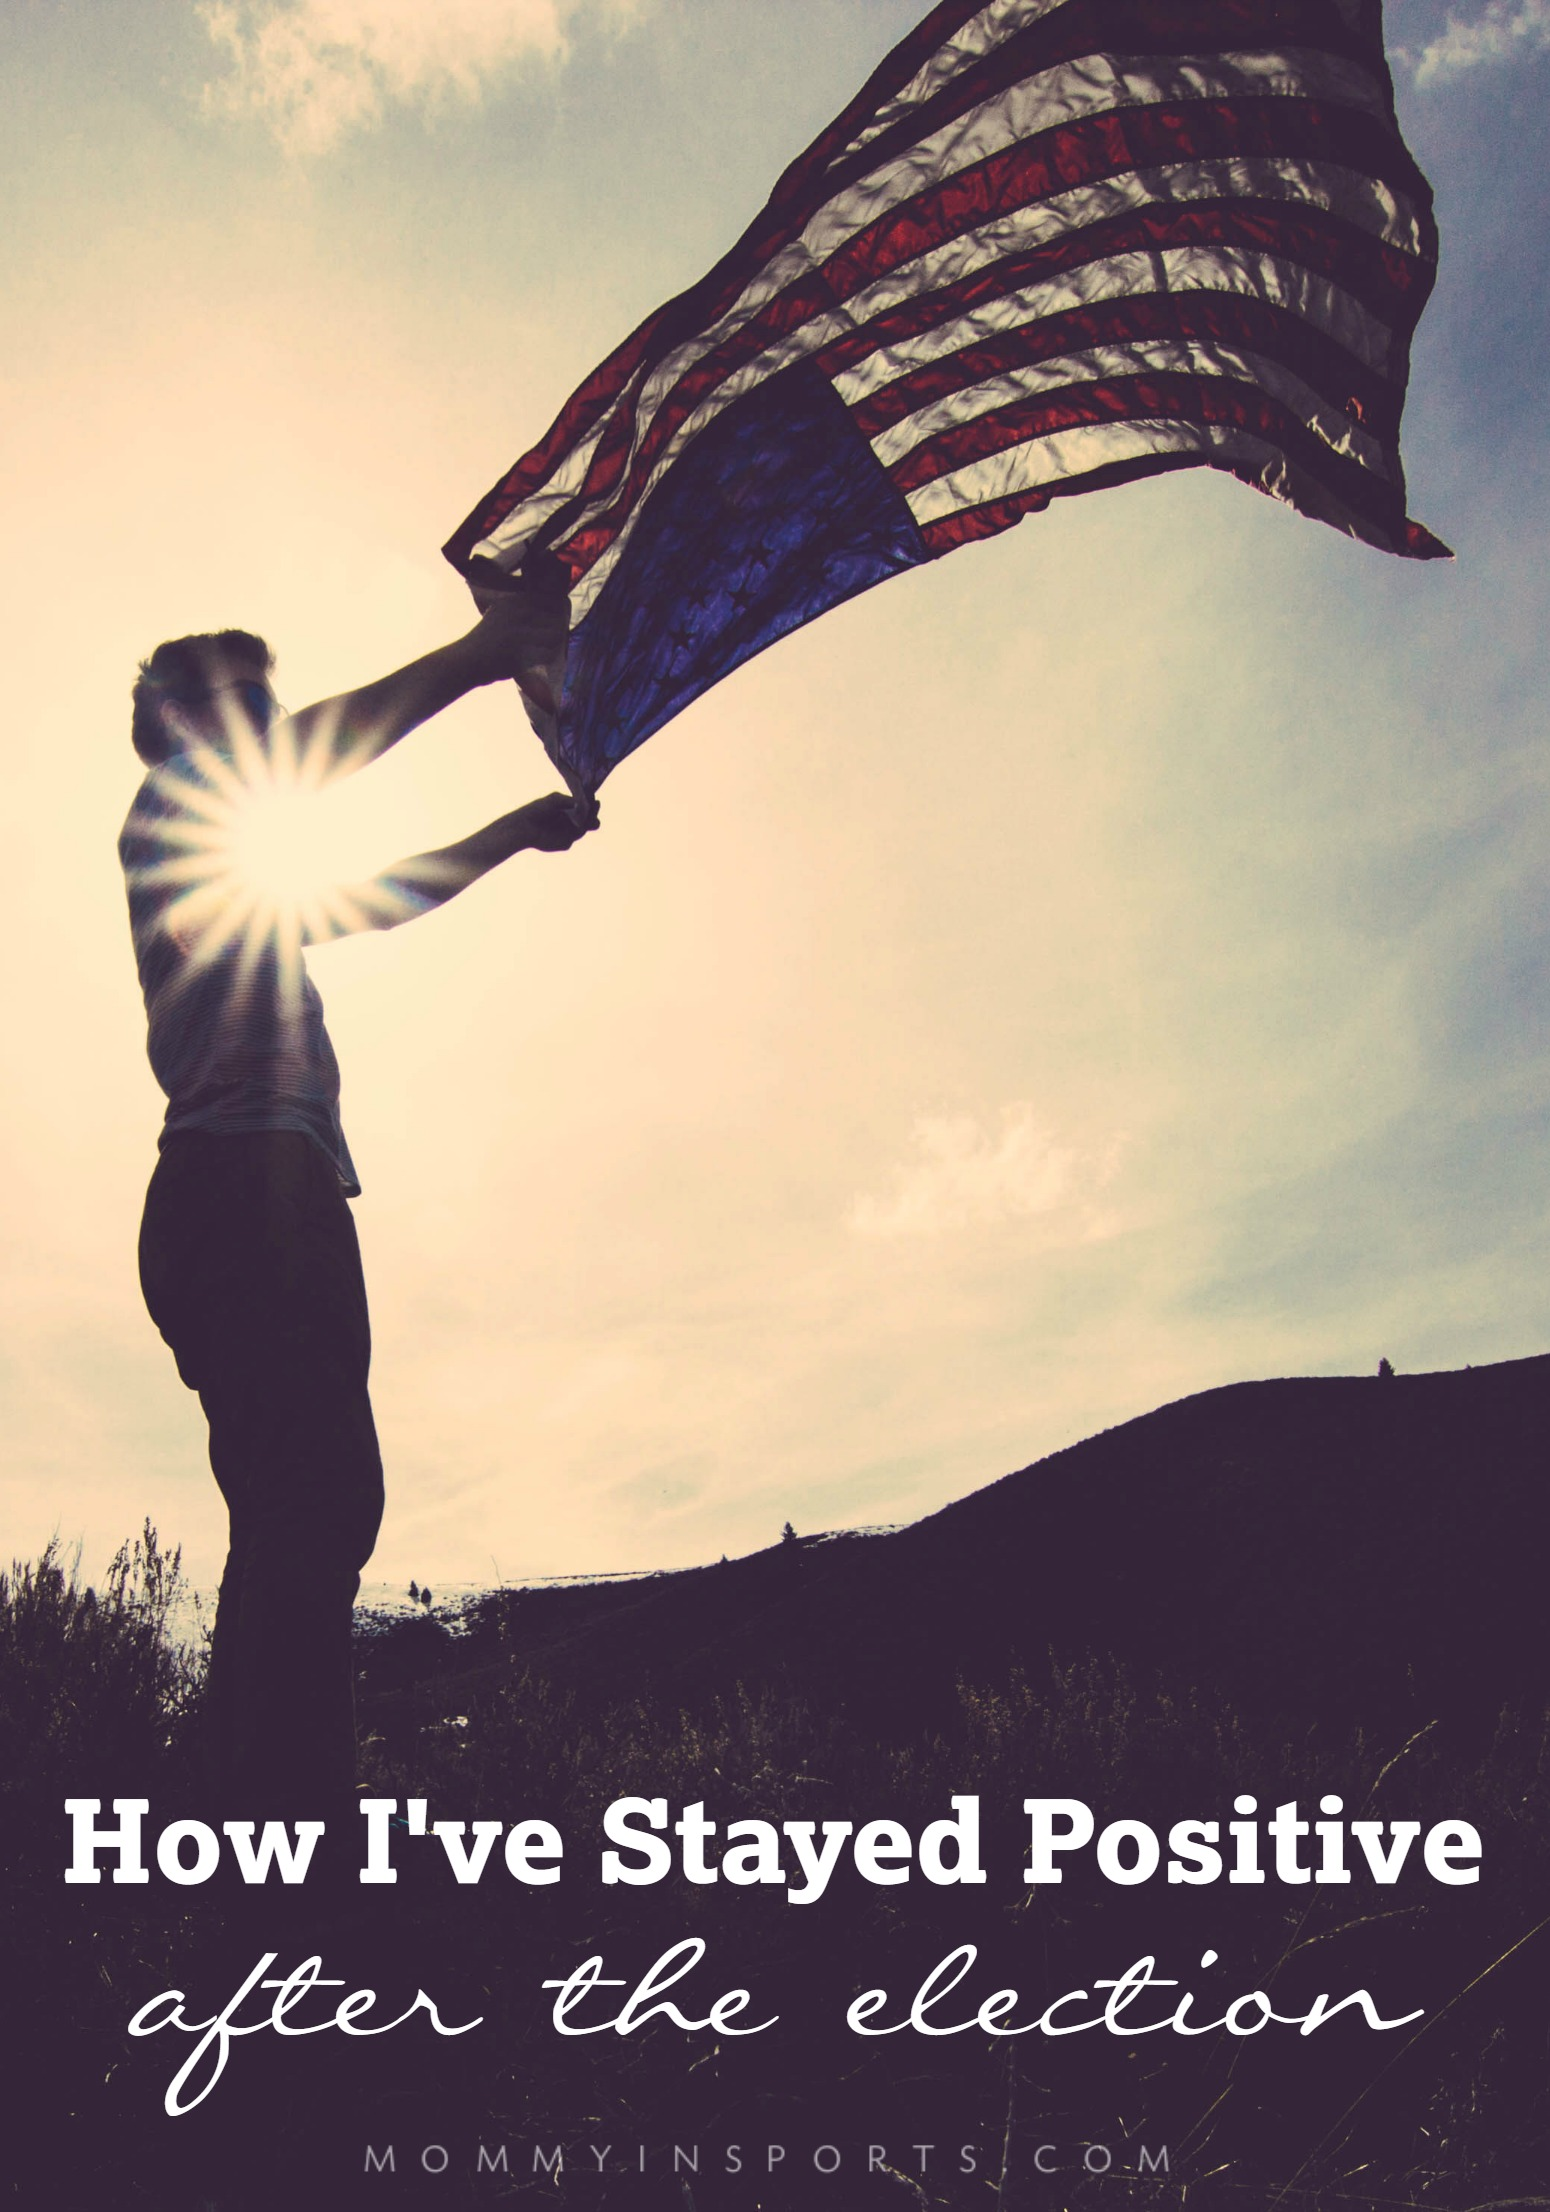 Sometimes life and our emotions can become overwhelming. Here are some strategies to help stay positive after the election.